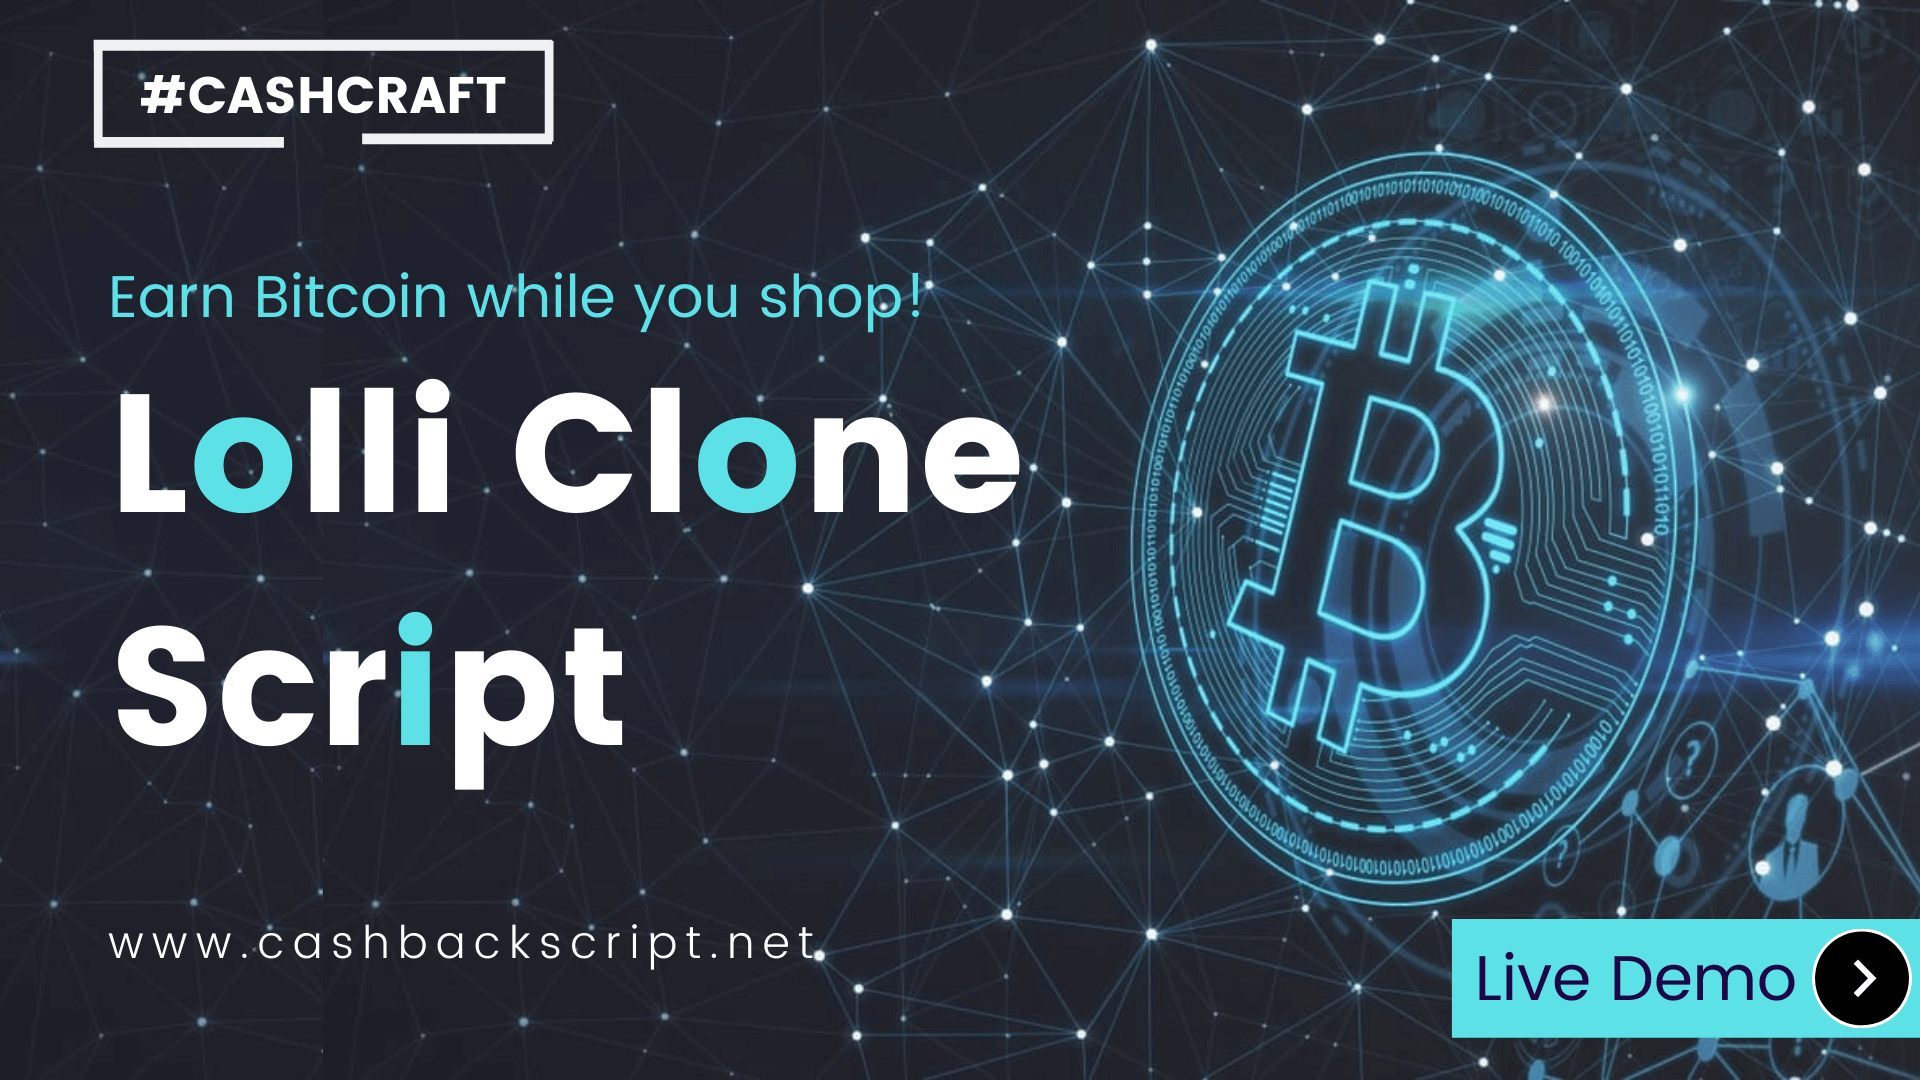 Lolli Clone Script: Things You Must Know Before Starting a Bitcoin Cashback business like Lolli!